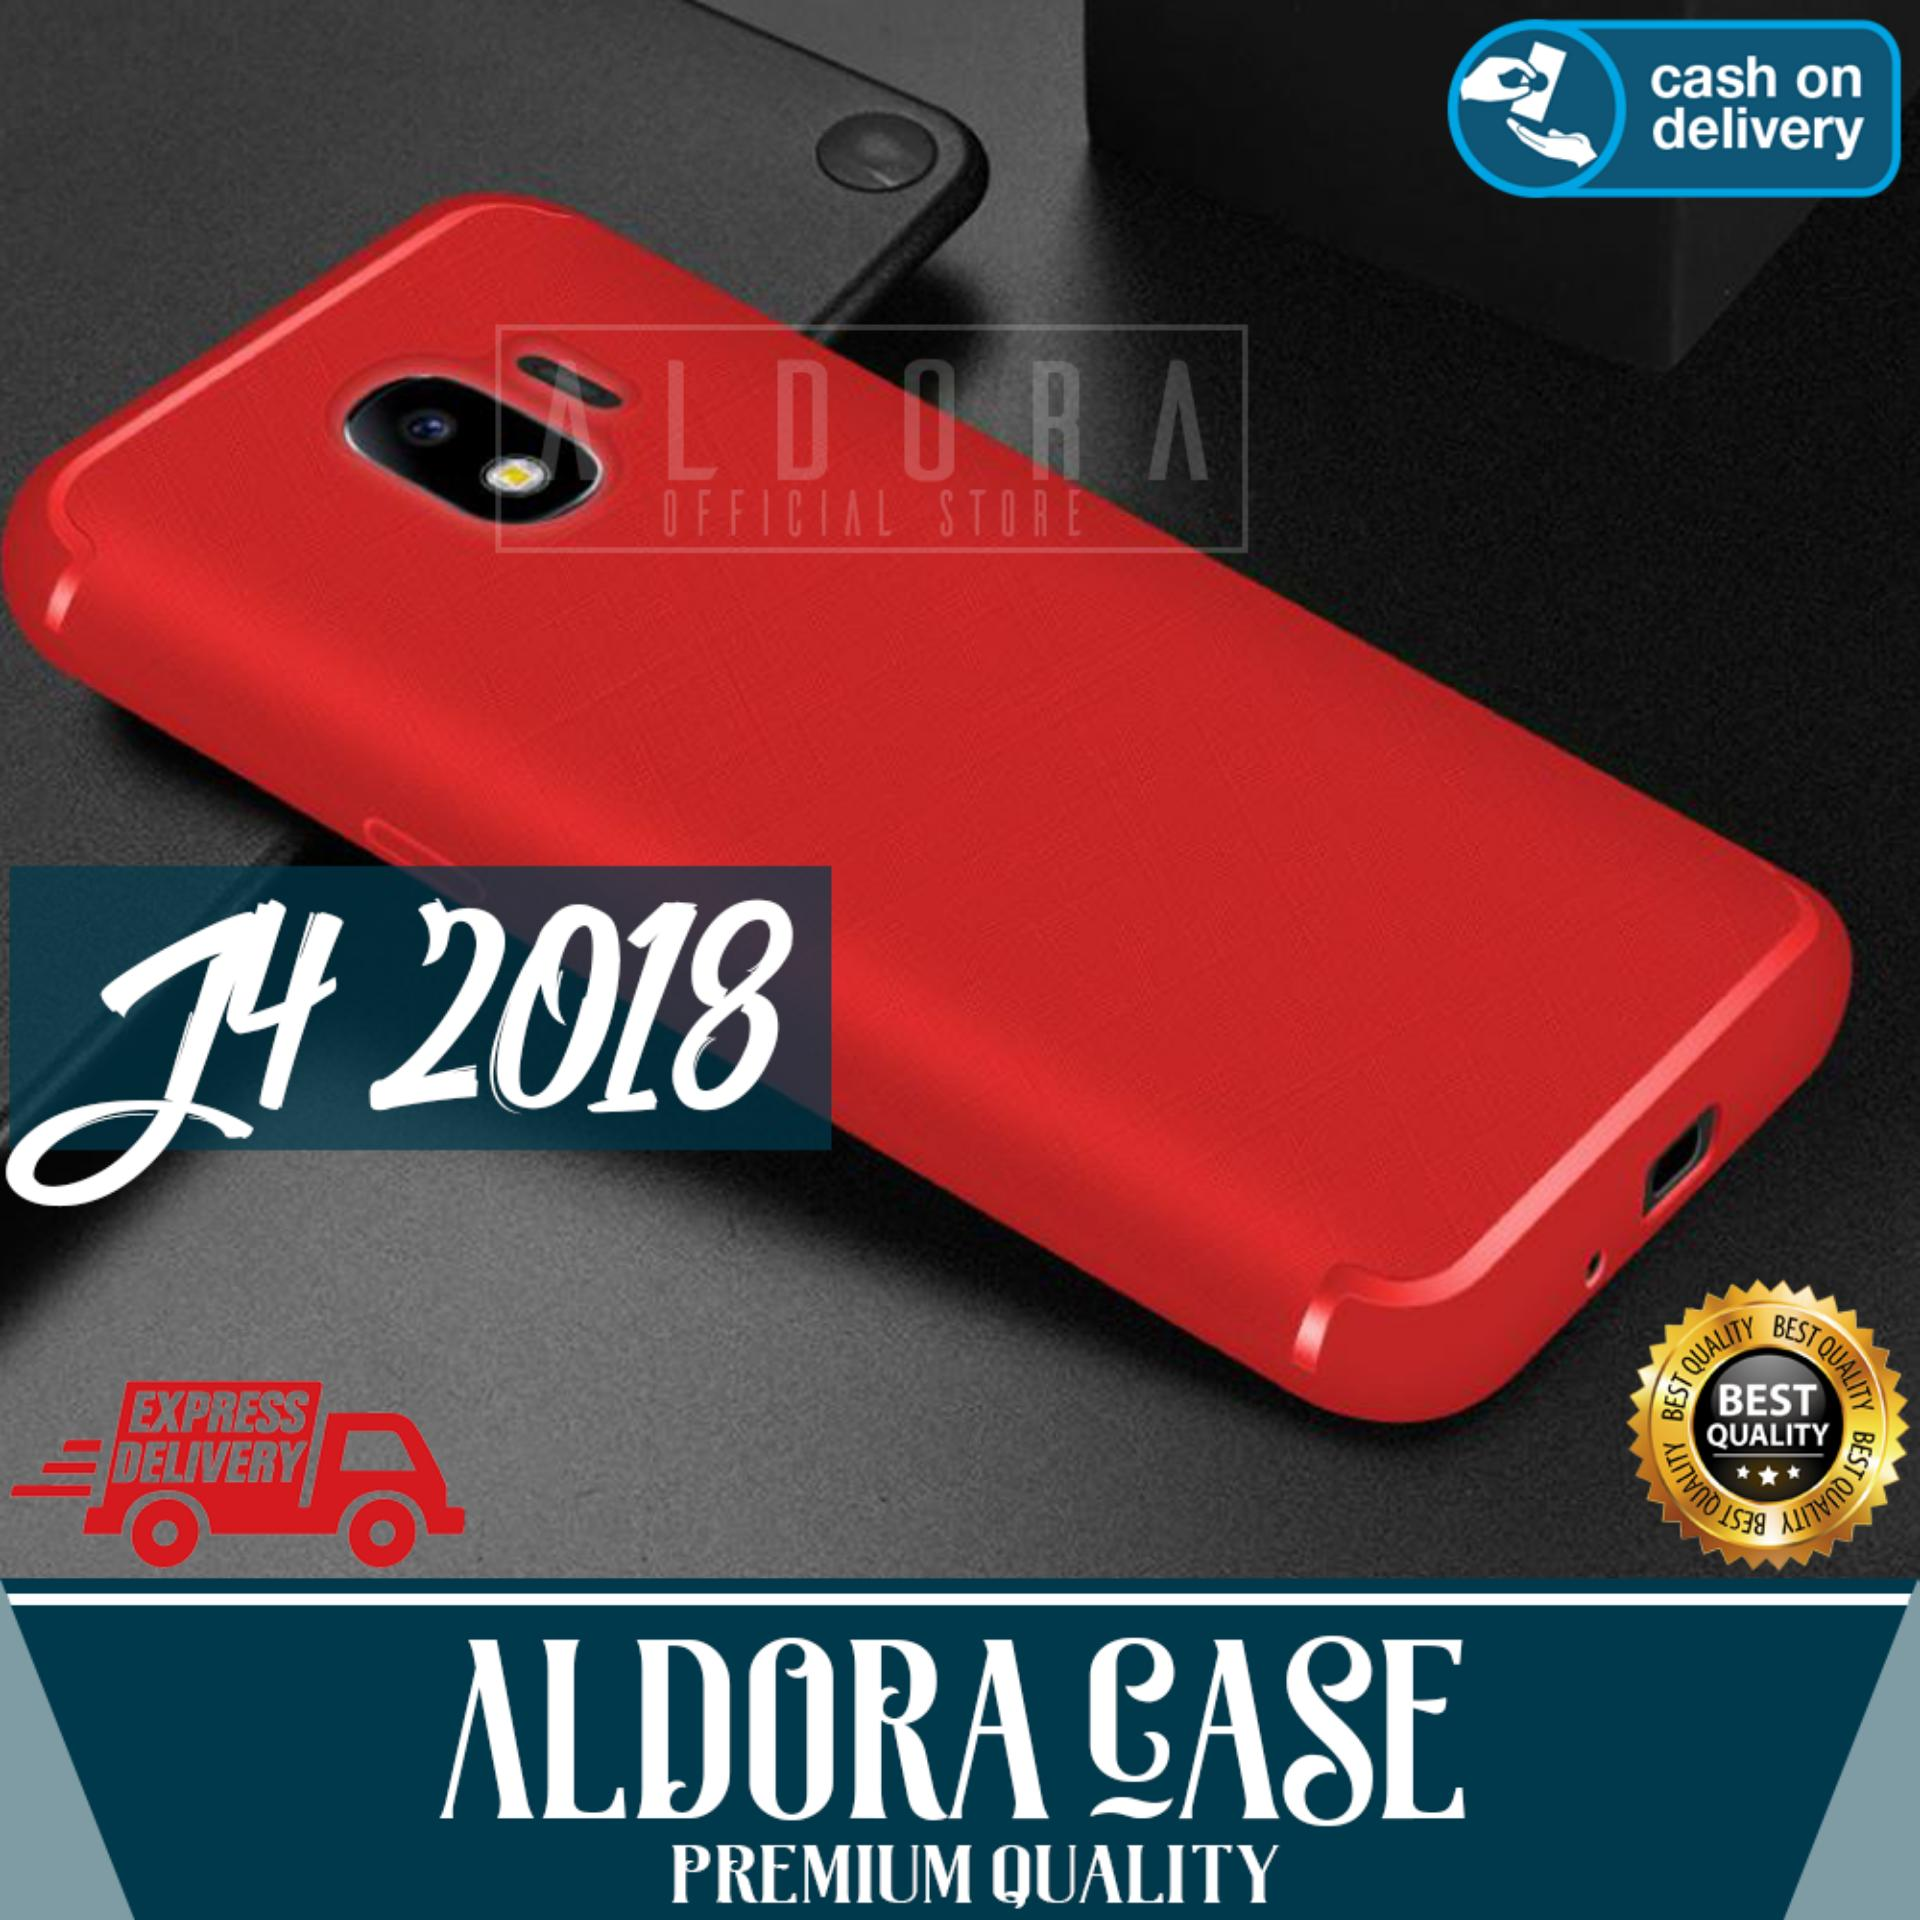 Aldora Case For Samsung Galaxy J4 2018 SoftCase UltraSlim Cross Smile Series Premium Quality